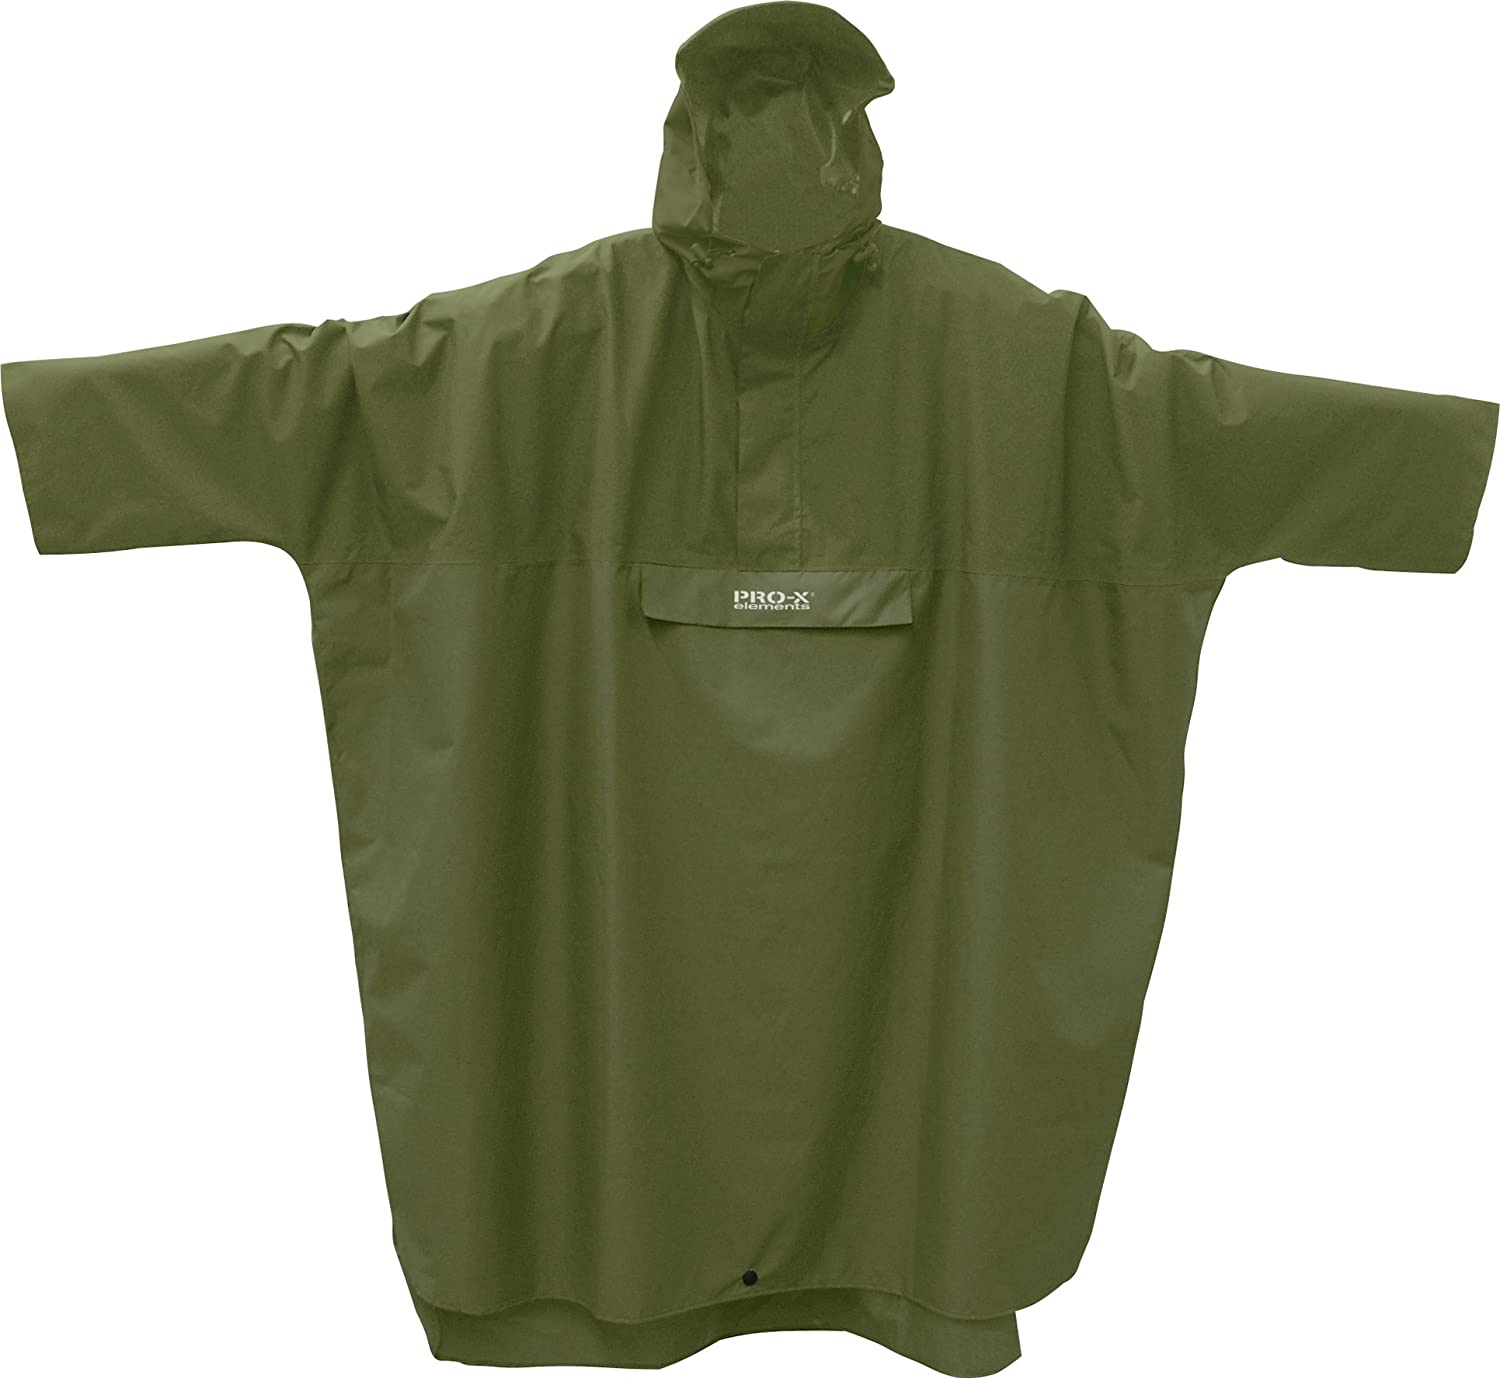 Pro-X-Elements High Peak Poncho - Wanderponcho